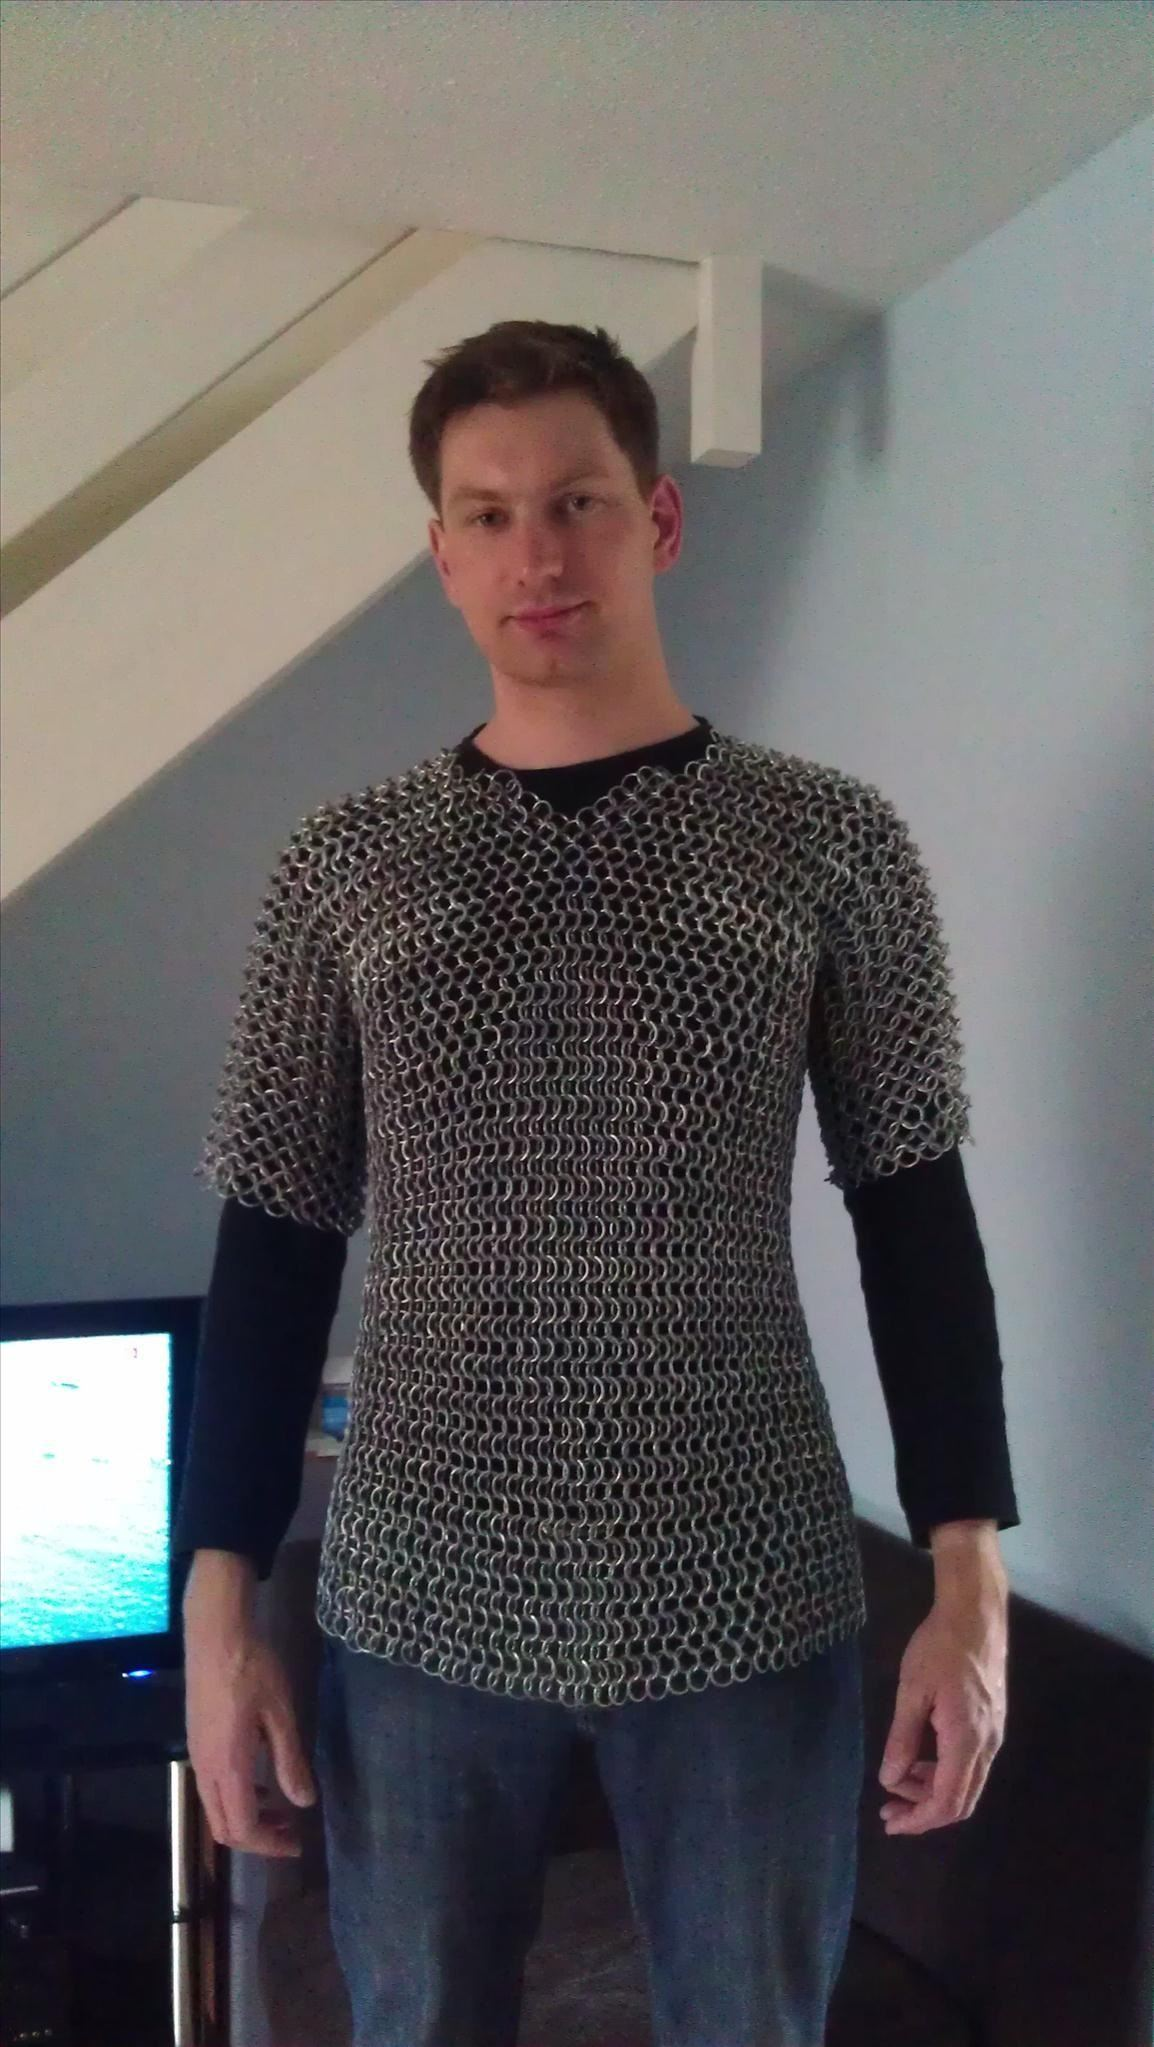 How To Make Chain Mail Armor From Start Finish Metalworking Repairing Aluminum Wiring My First Attempt Here With 25mm Galvanized Wire Left Over Gardening Stuff